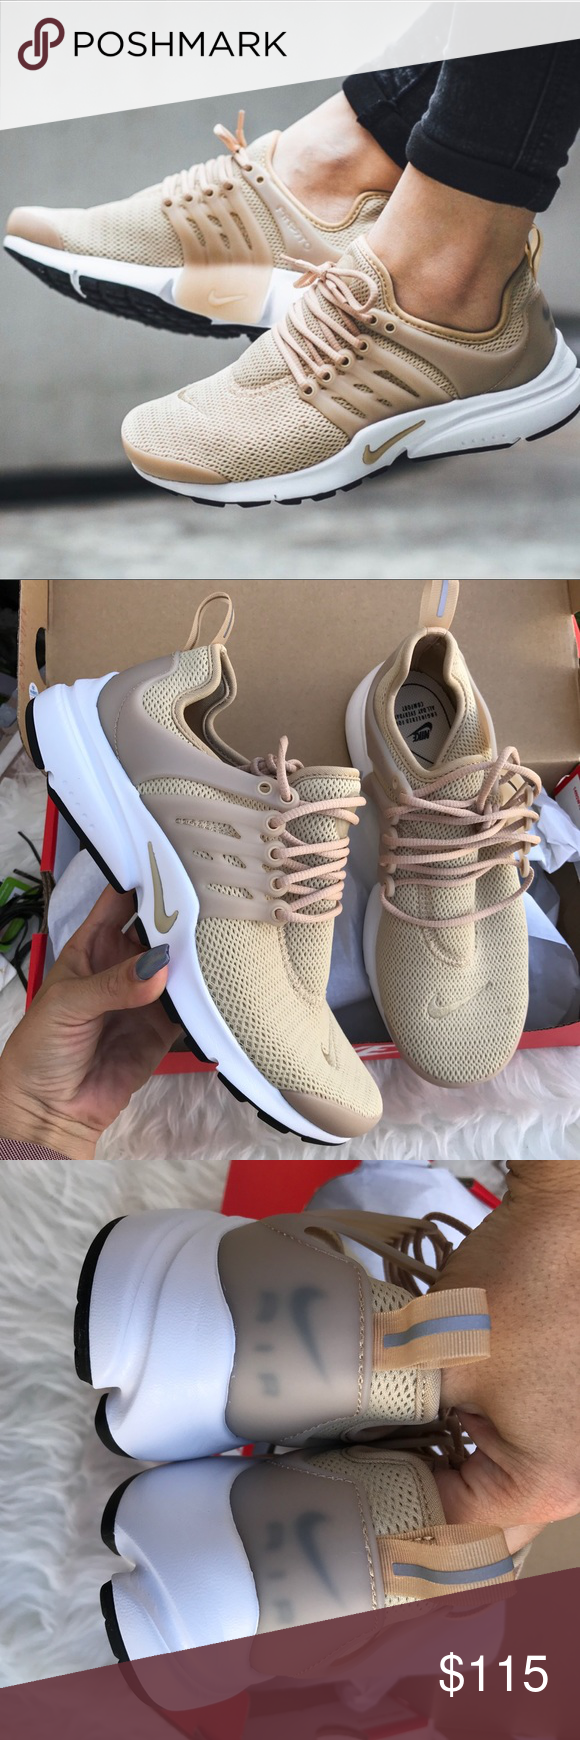 innovative design 26403 eafe5 NIKE AIR PRESTO LINEN LIMITED EDITION COLOR Sz 7 NIKE AIR PRESTO LINEN  COLOR SOLD OUT Sz 7 new 100% authentic! Itemcloset seize Nike Shoes